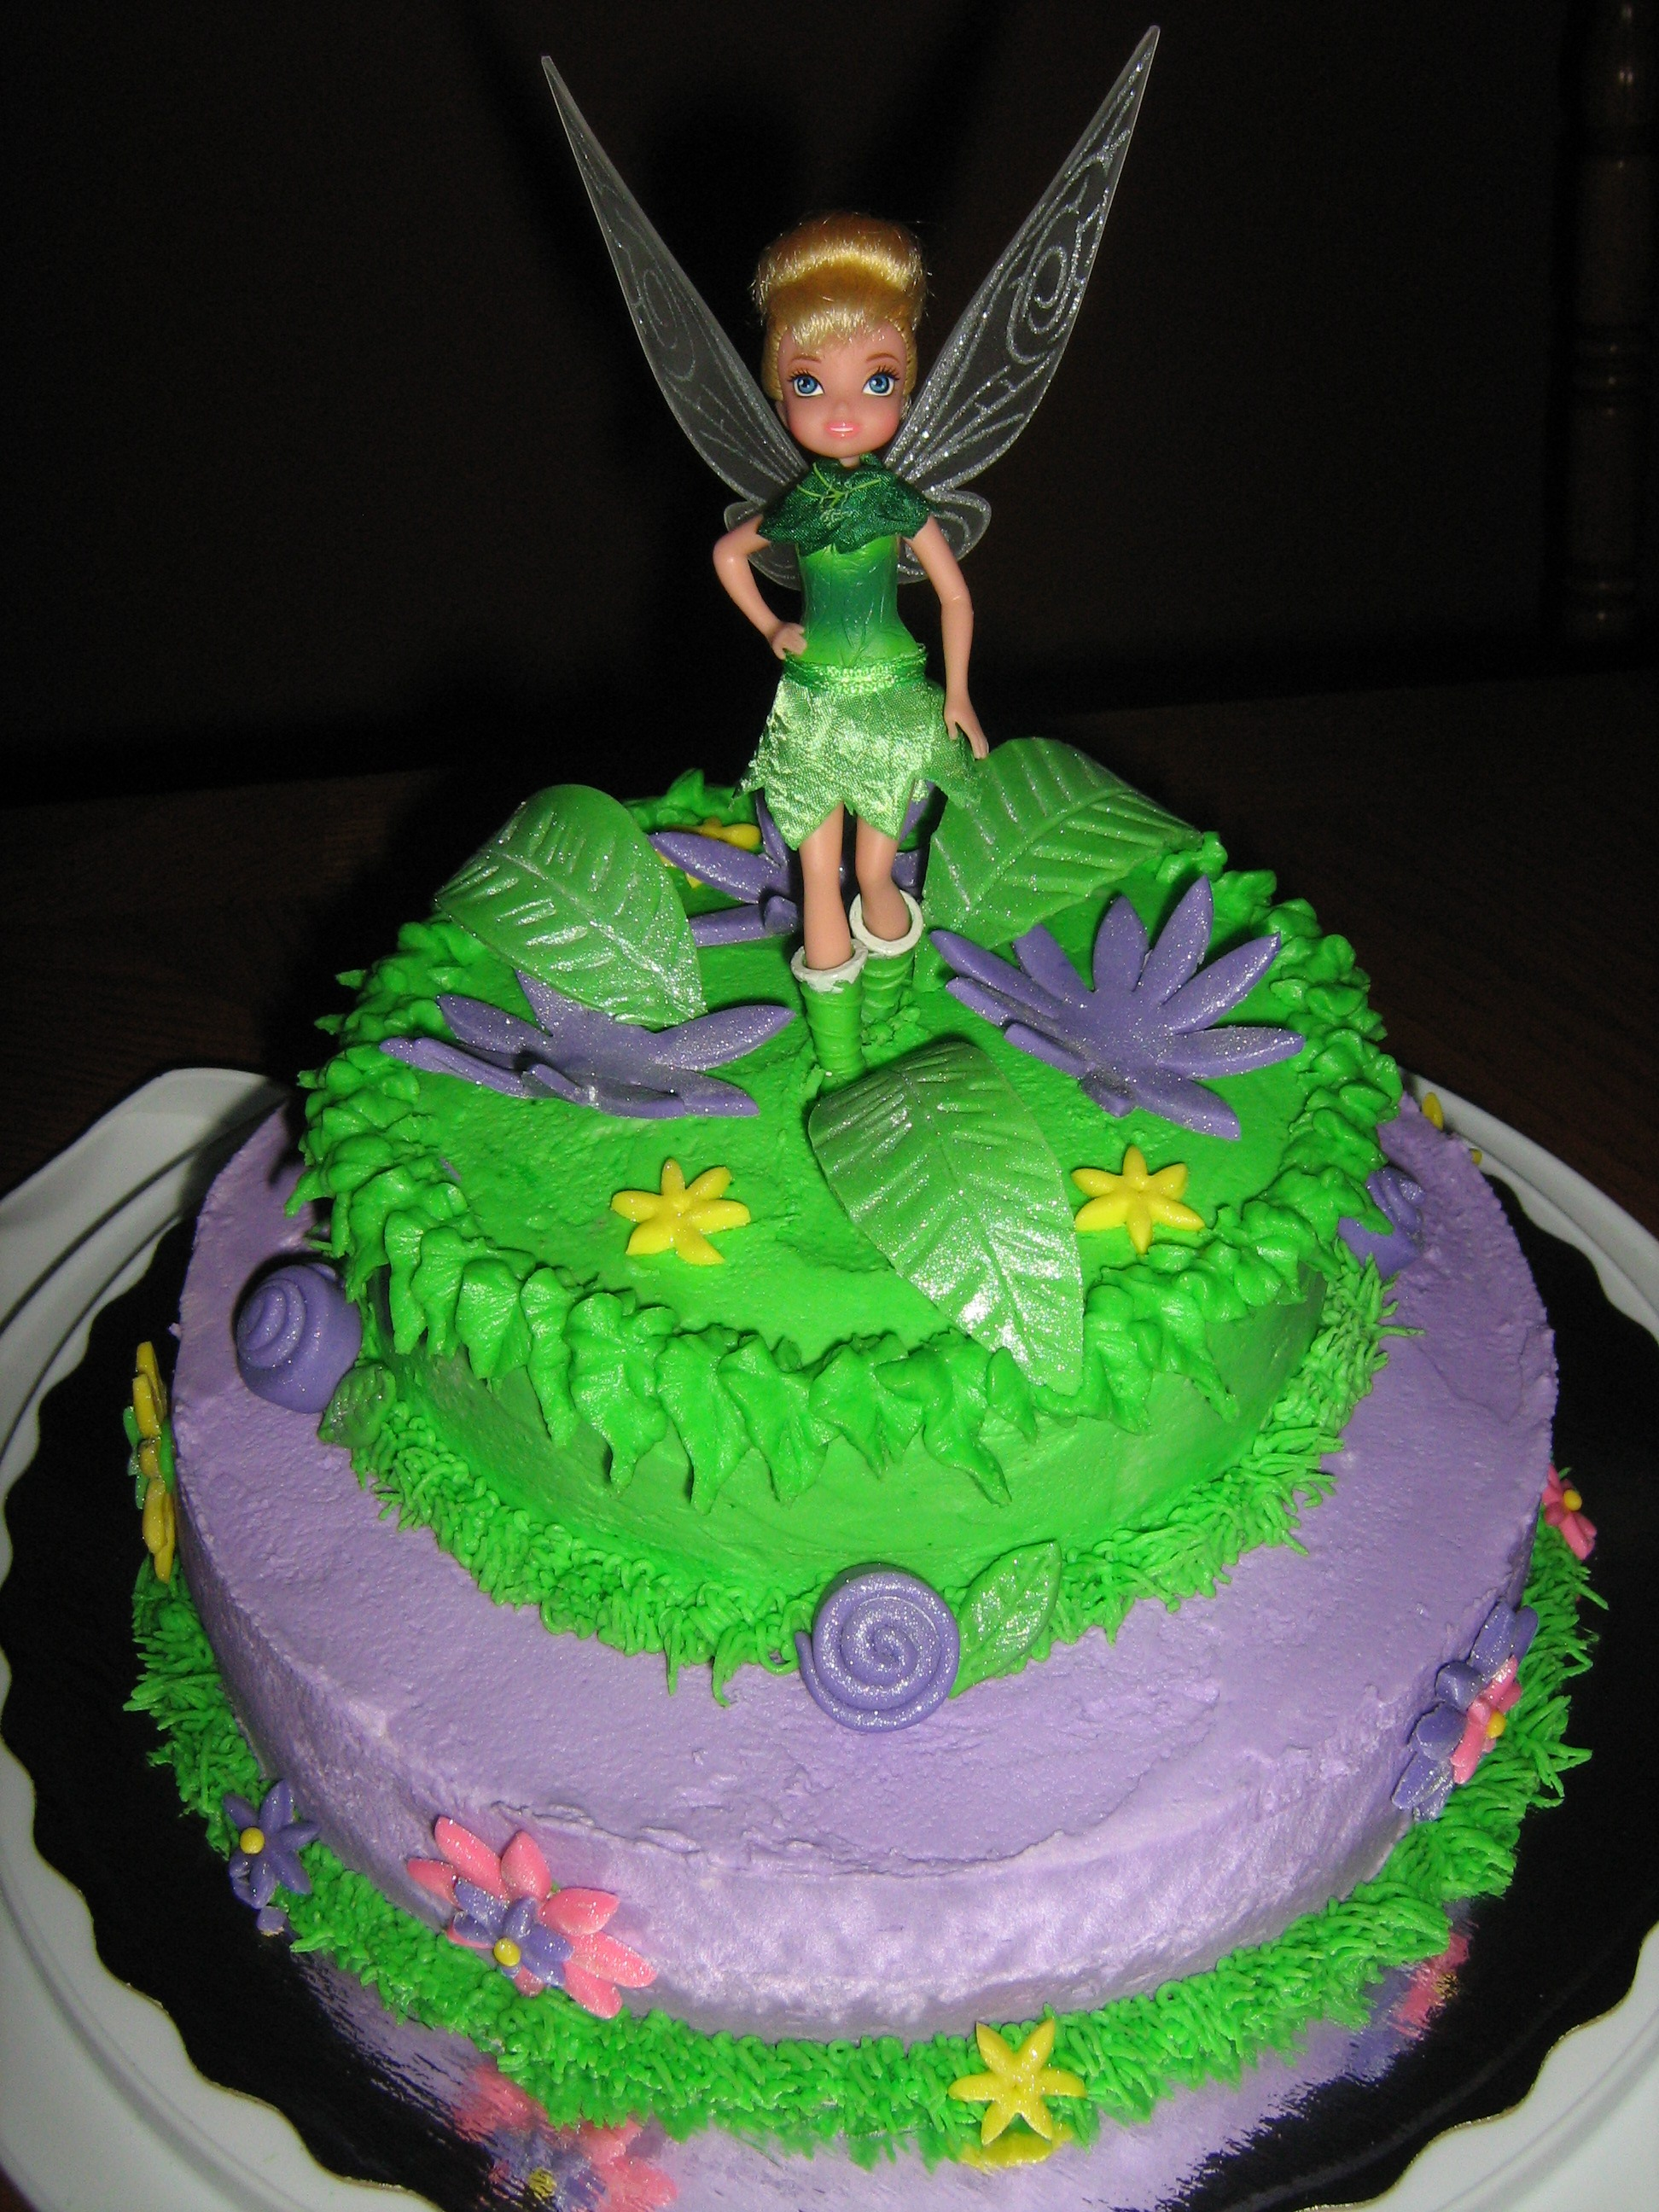 Cake Designs Tinkerbell : Tinkerbell Cakes   Decoration Ideas Little Birthday Cakes